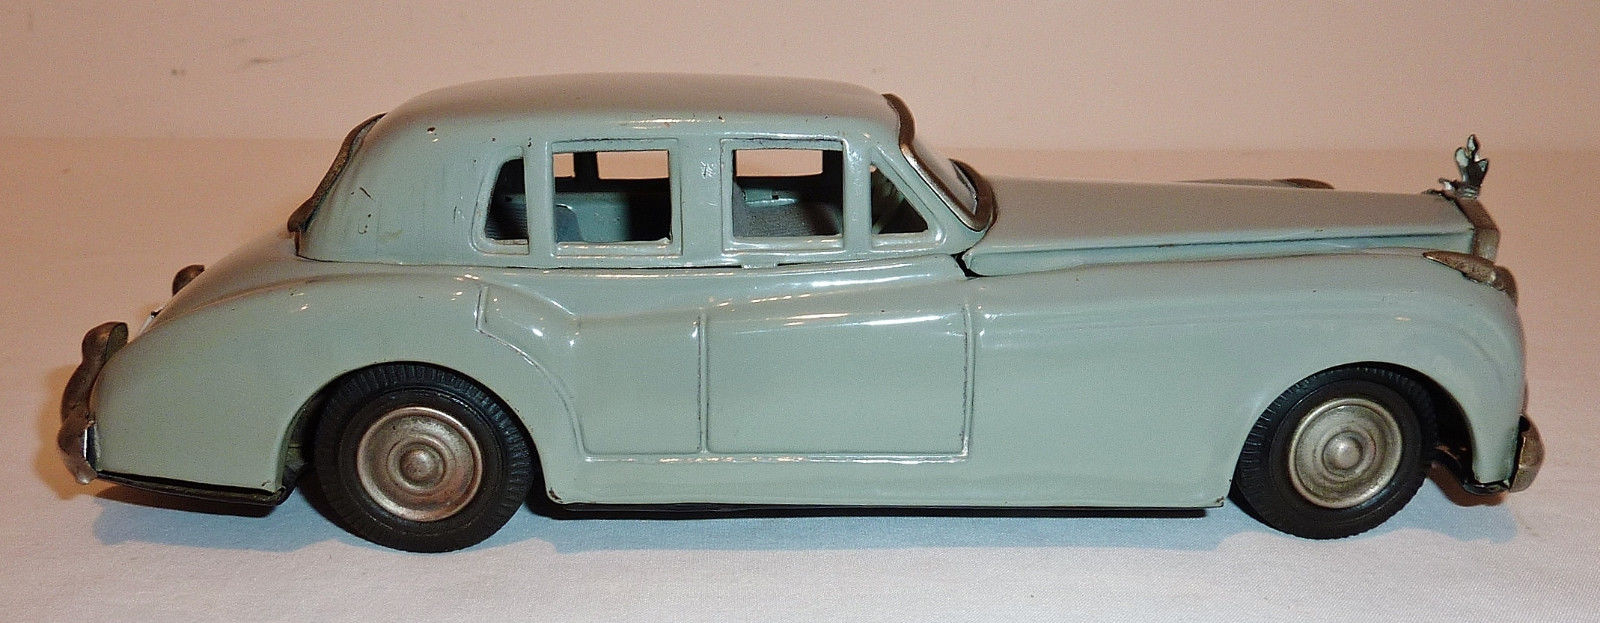 YONEZAWA Japanese Tin Litho Friction 1960s ROLLS ROYCE SILVER CLOUD 4-DOOR SEDAN